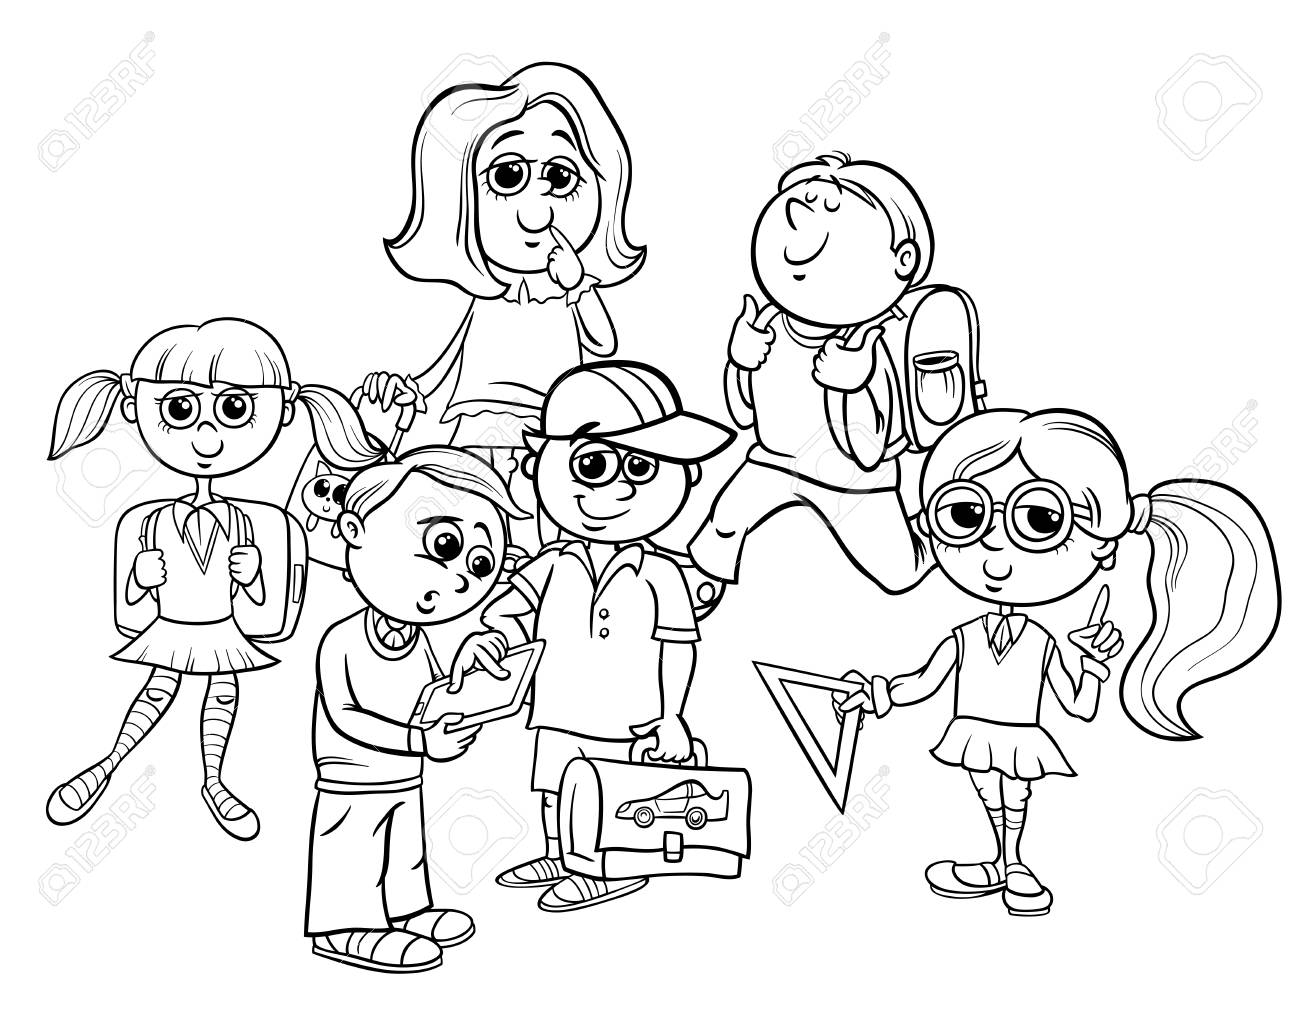 black and white cartoon illustration of elementary school students